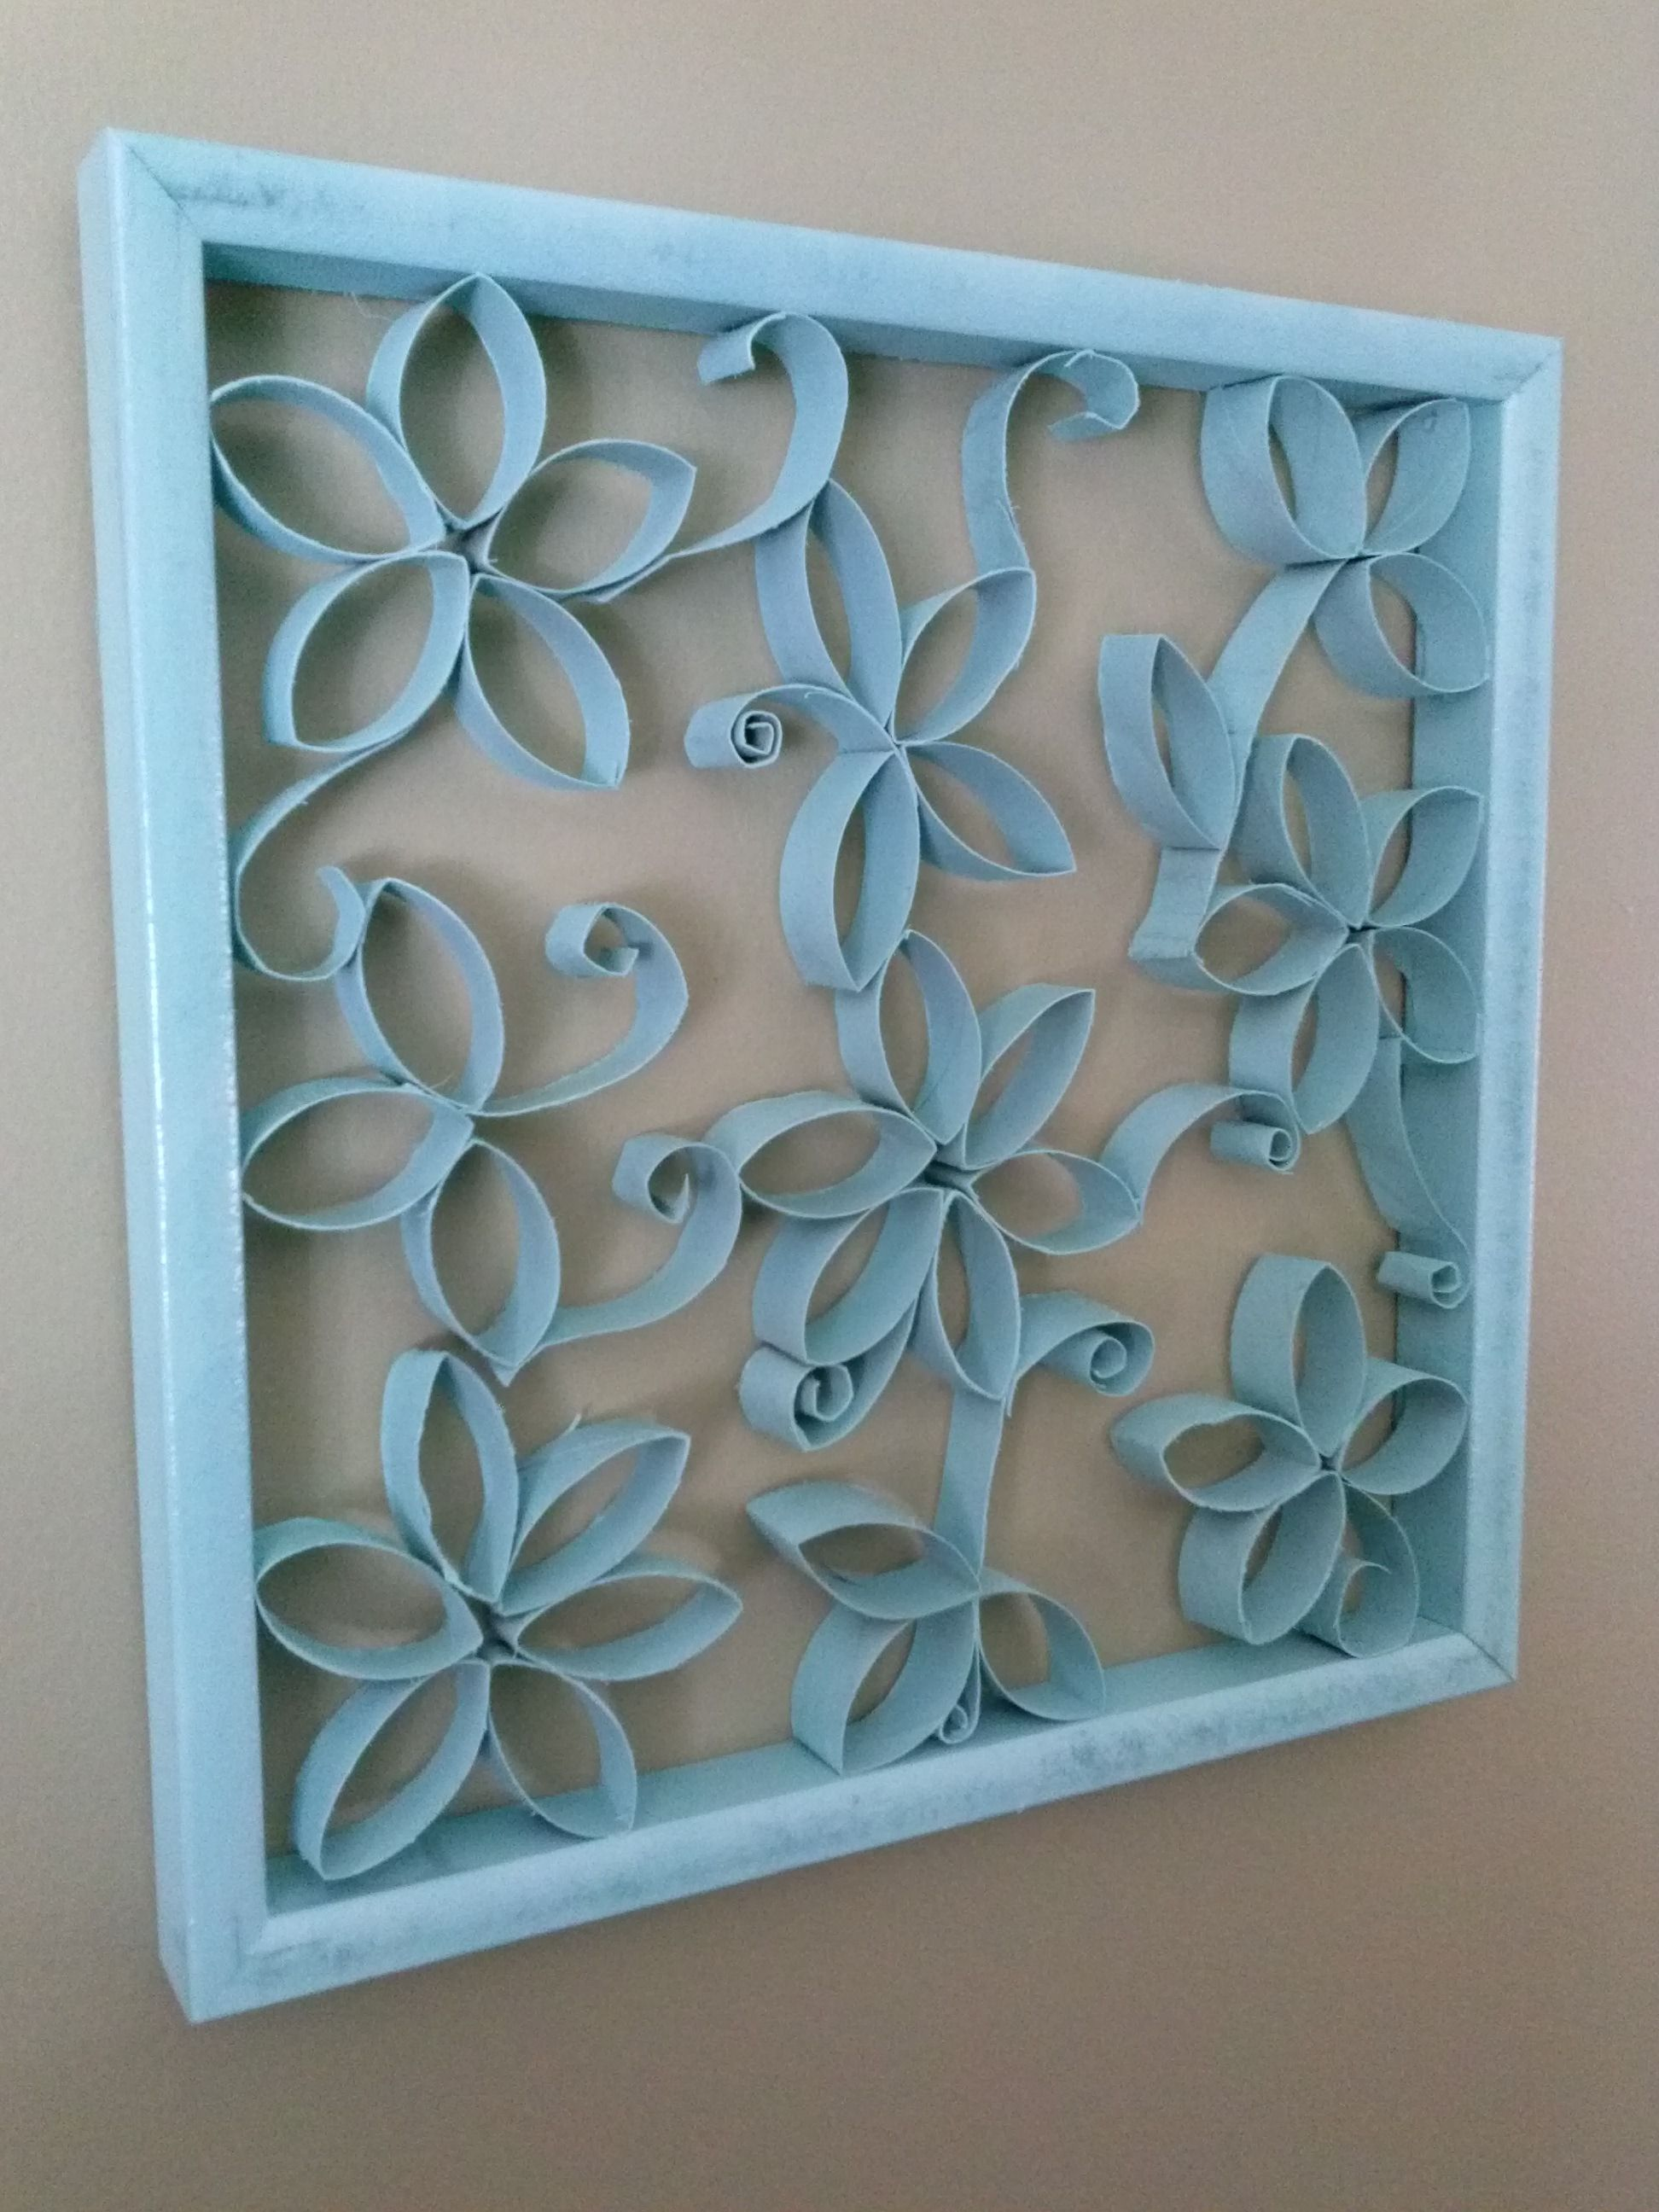 I Had The Frame Toilet Paper Rolls Cut Into Flowers And Stems